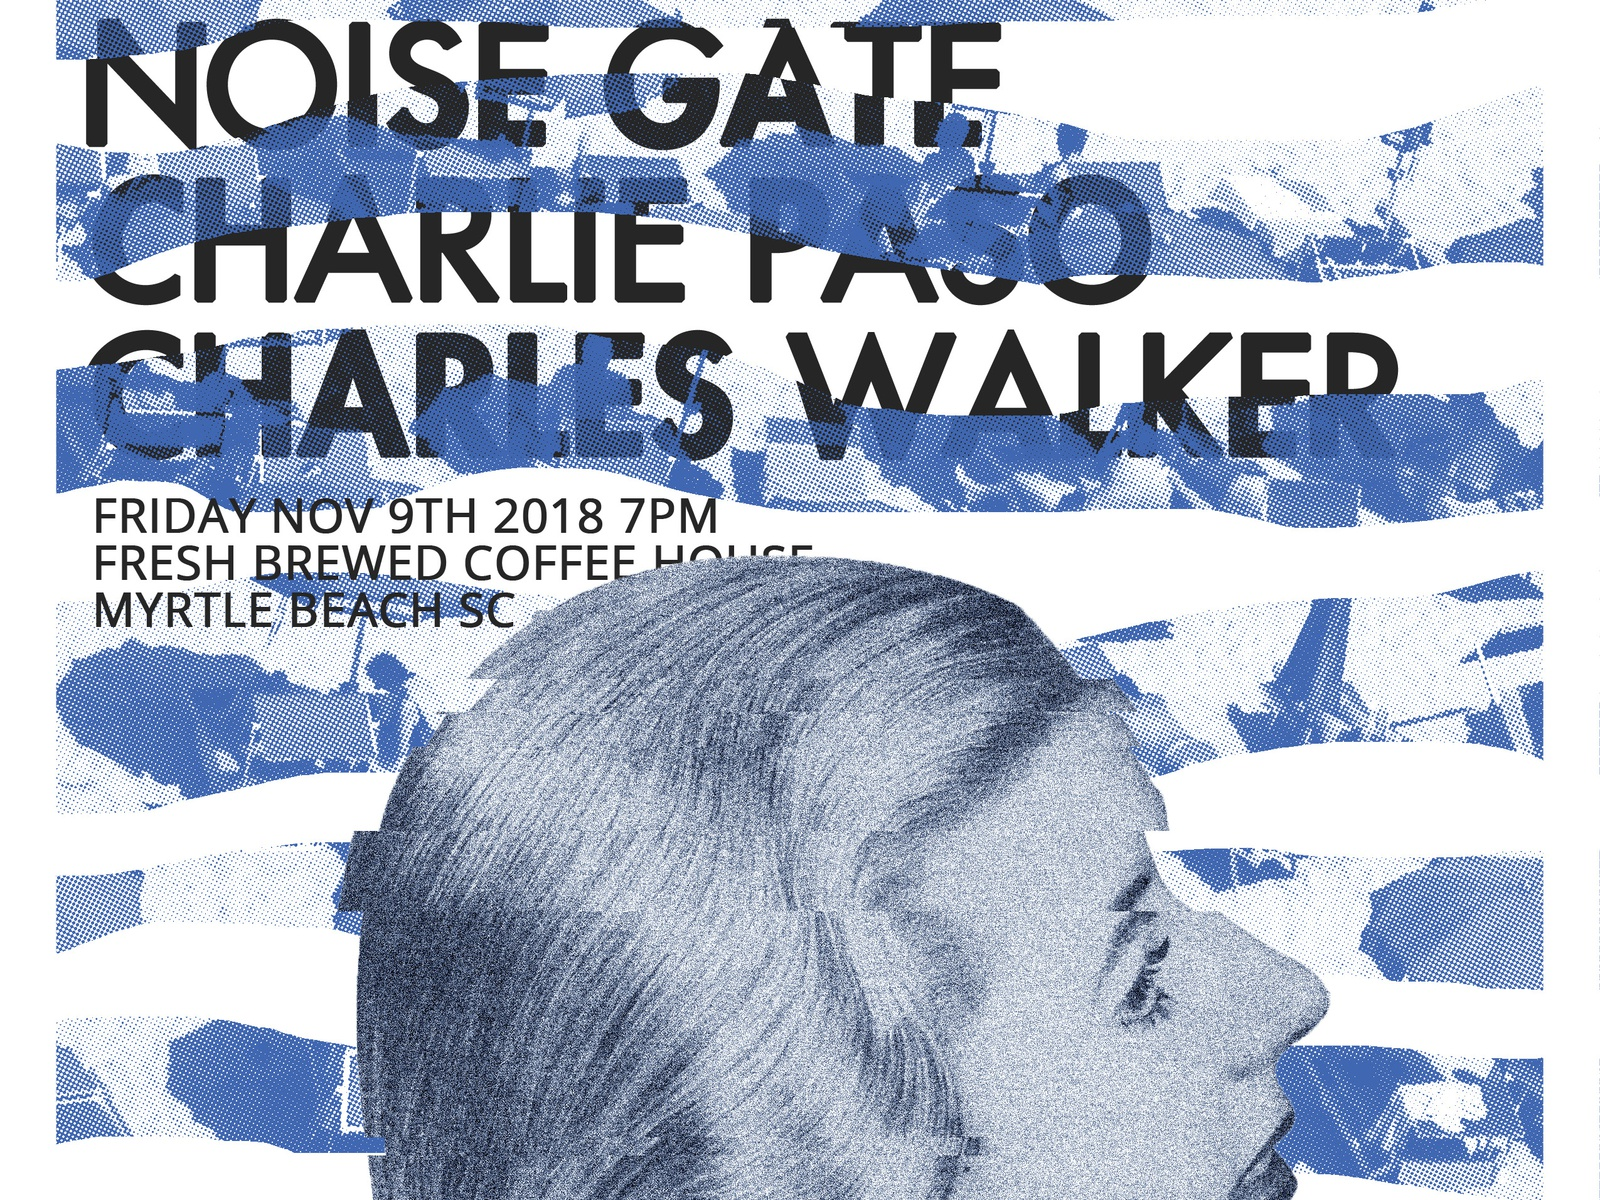 Umbrellas flyer poster gig poster glitch water static noise blue woman lady coffee house myrtle beach sand beach umbrella